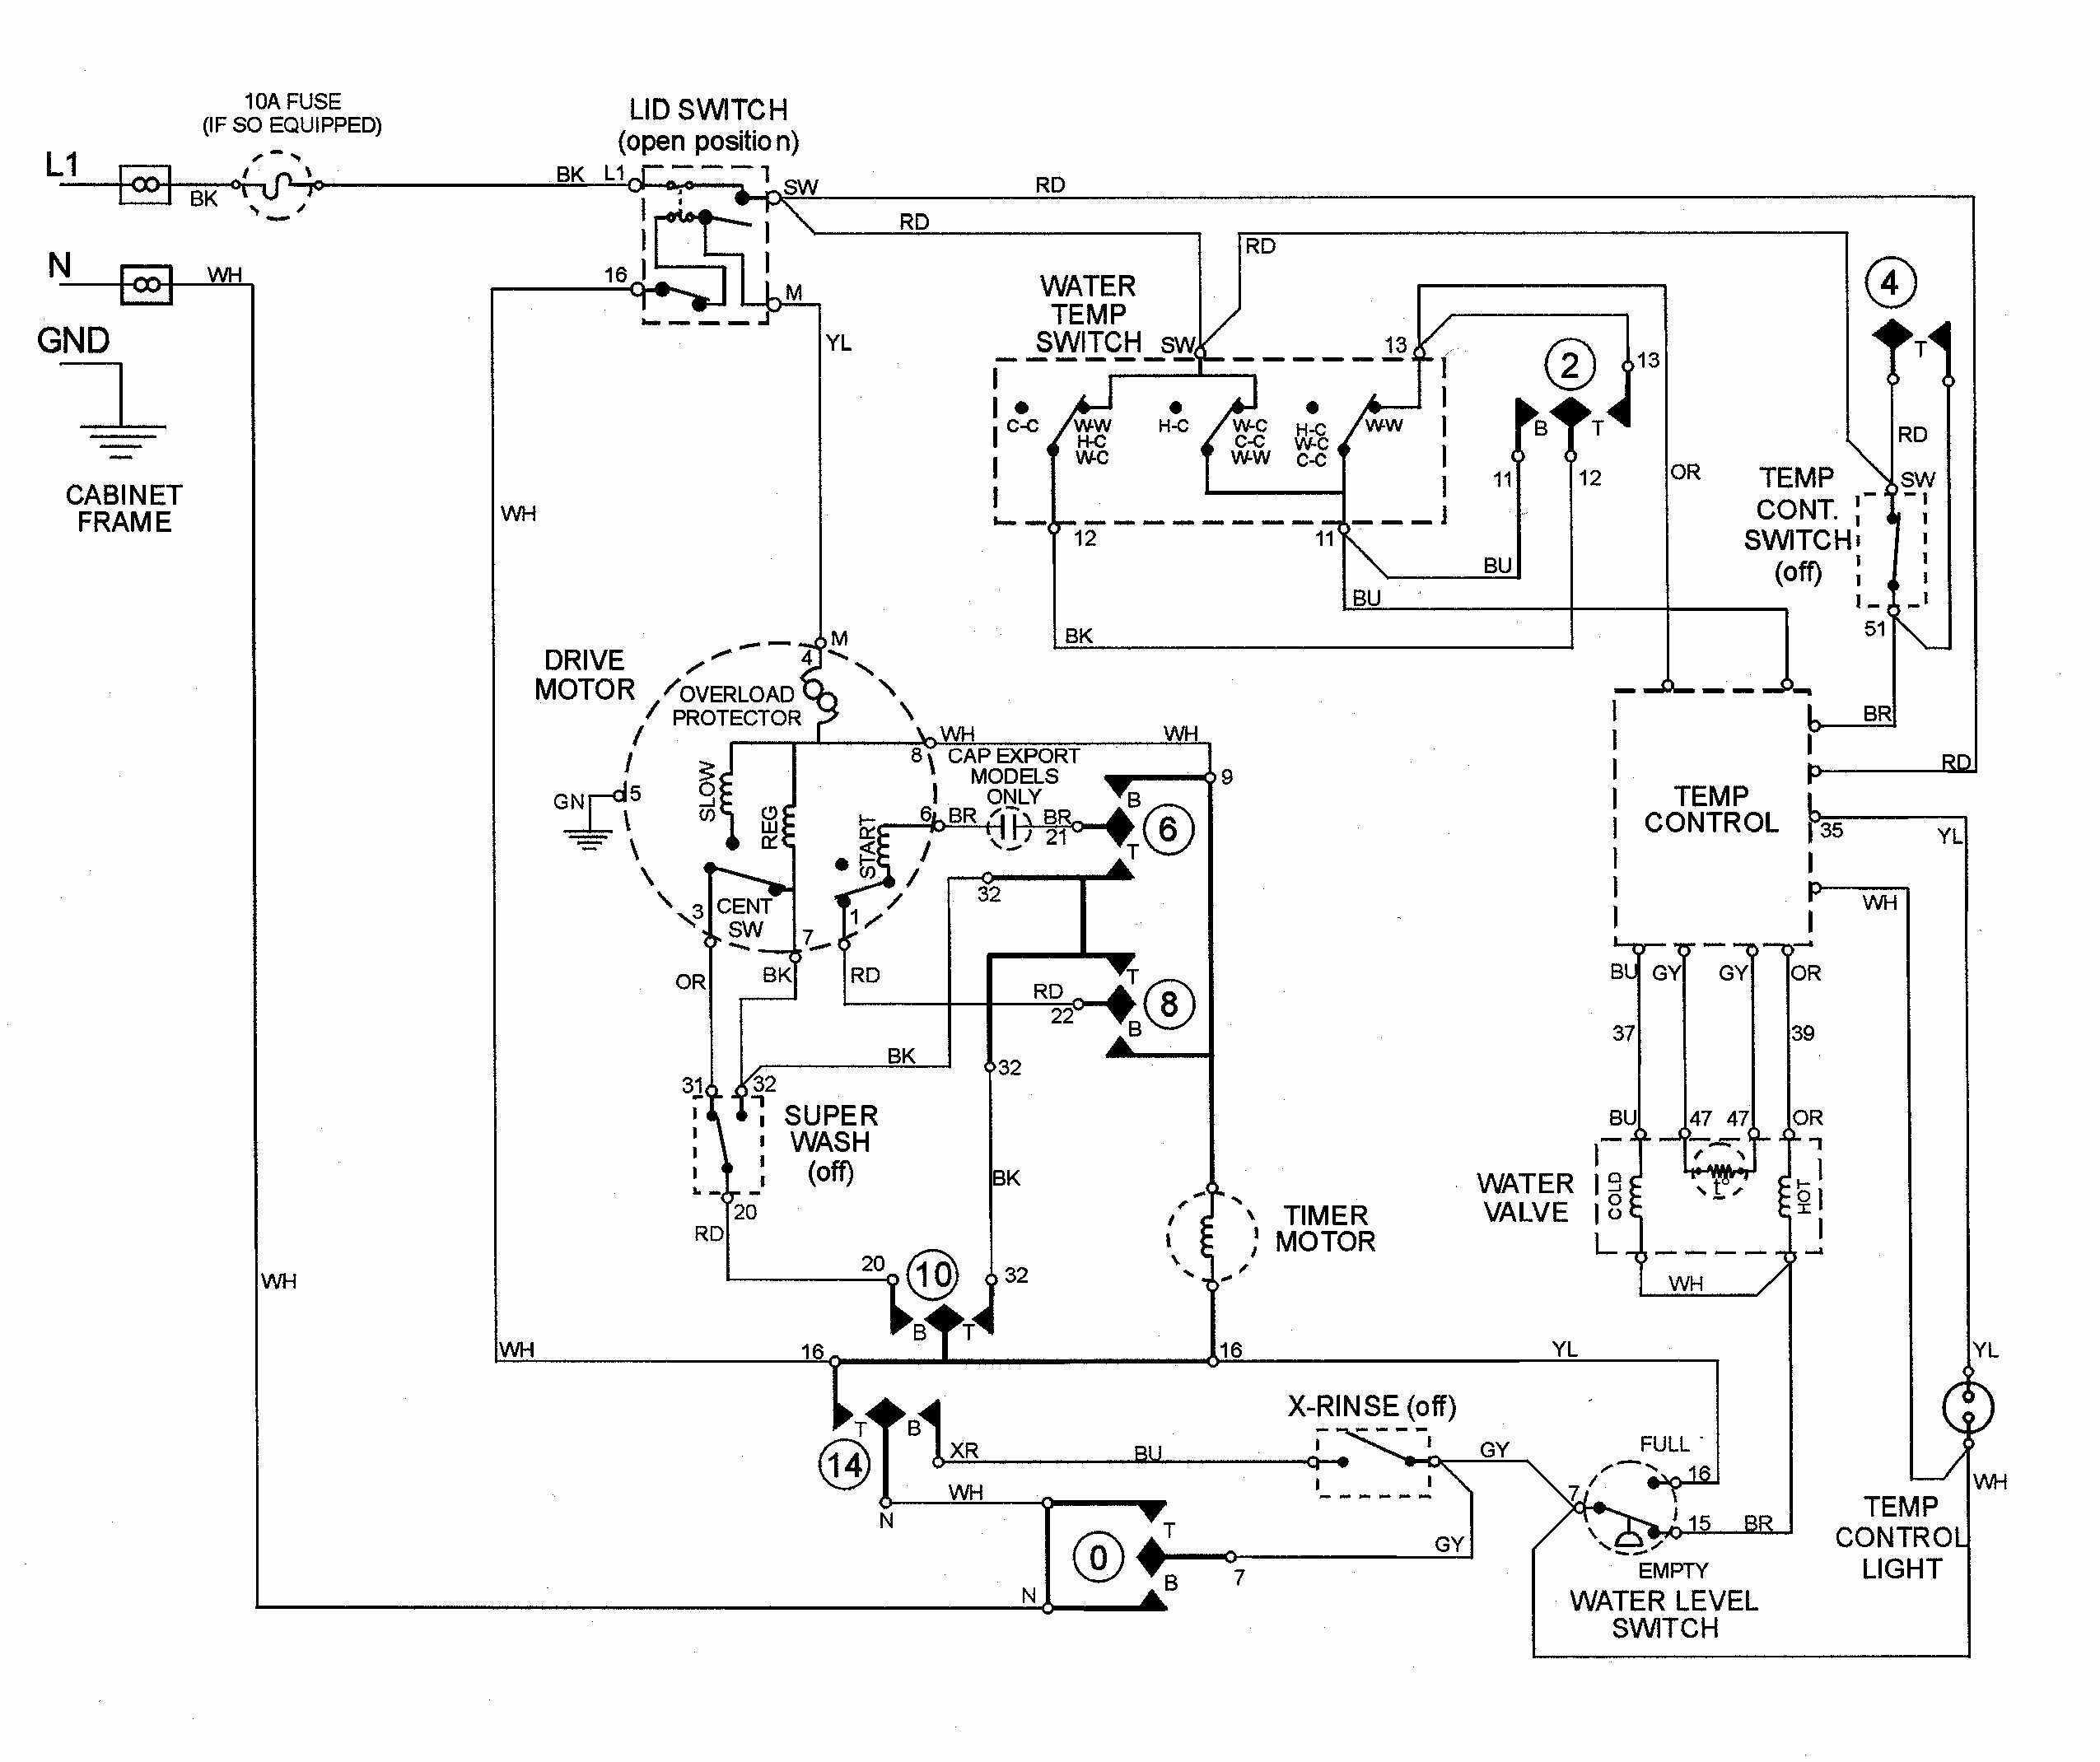 ge washer motor wiring diagram | free wiring diagram ge blower wiring diagram free picture schematic